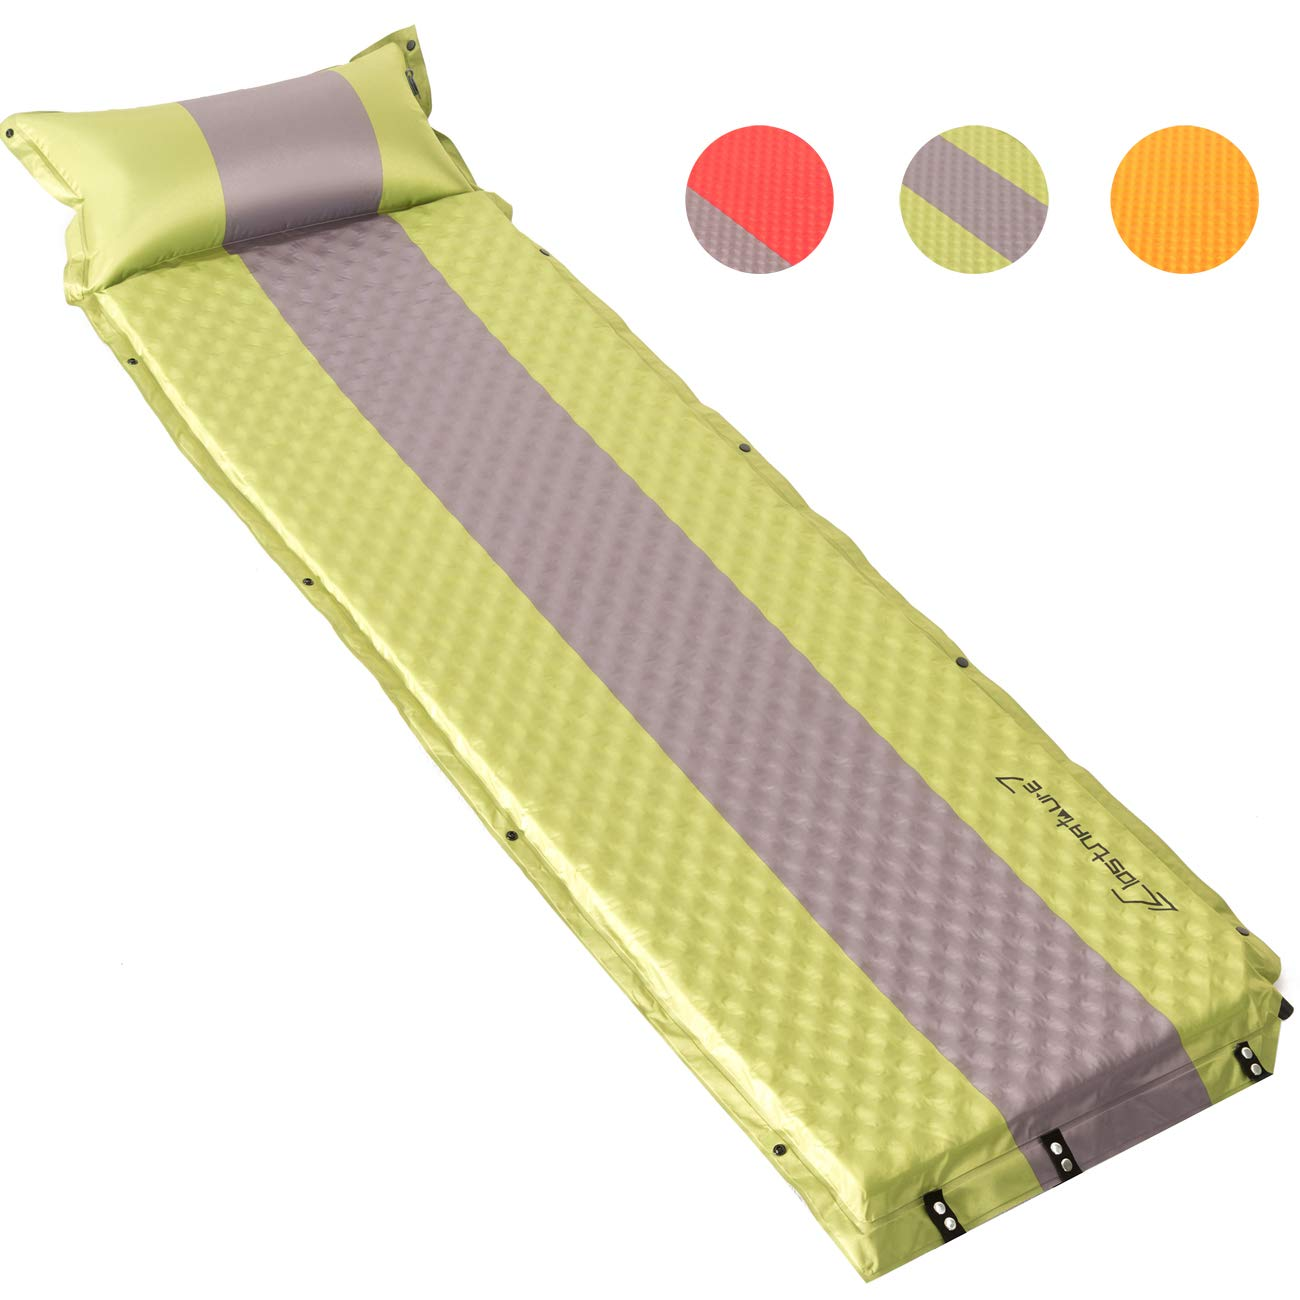 Clostnature Self Inflating Sleeping Pad - Camping Pad, Lightweight Connectable Foam Mat, Comfortable Foam Pad for Camping, Backpacking, Hiking, Outdoor and Tent by Clostnature